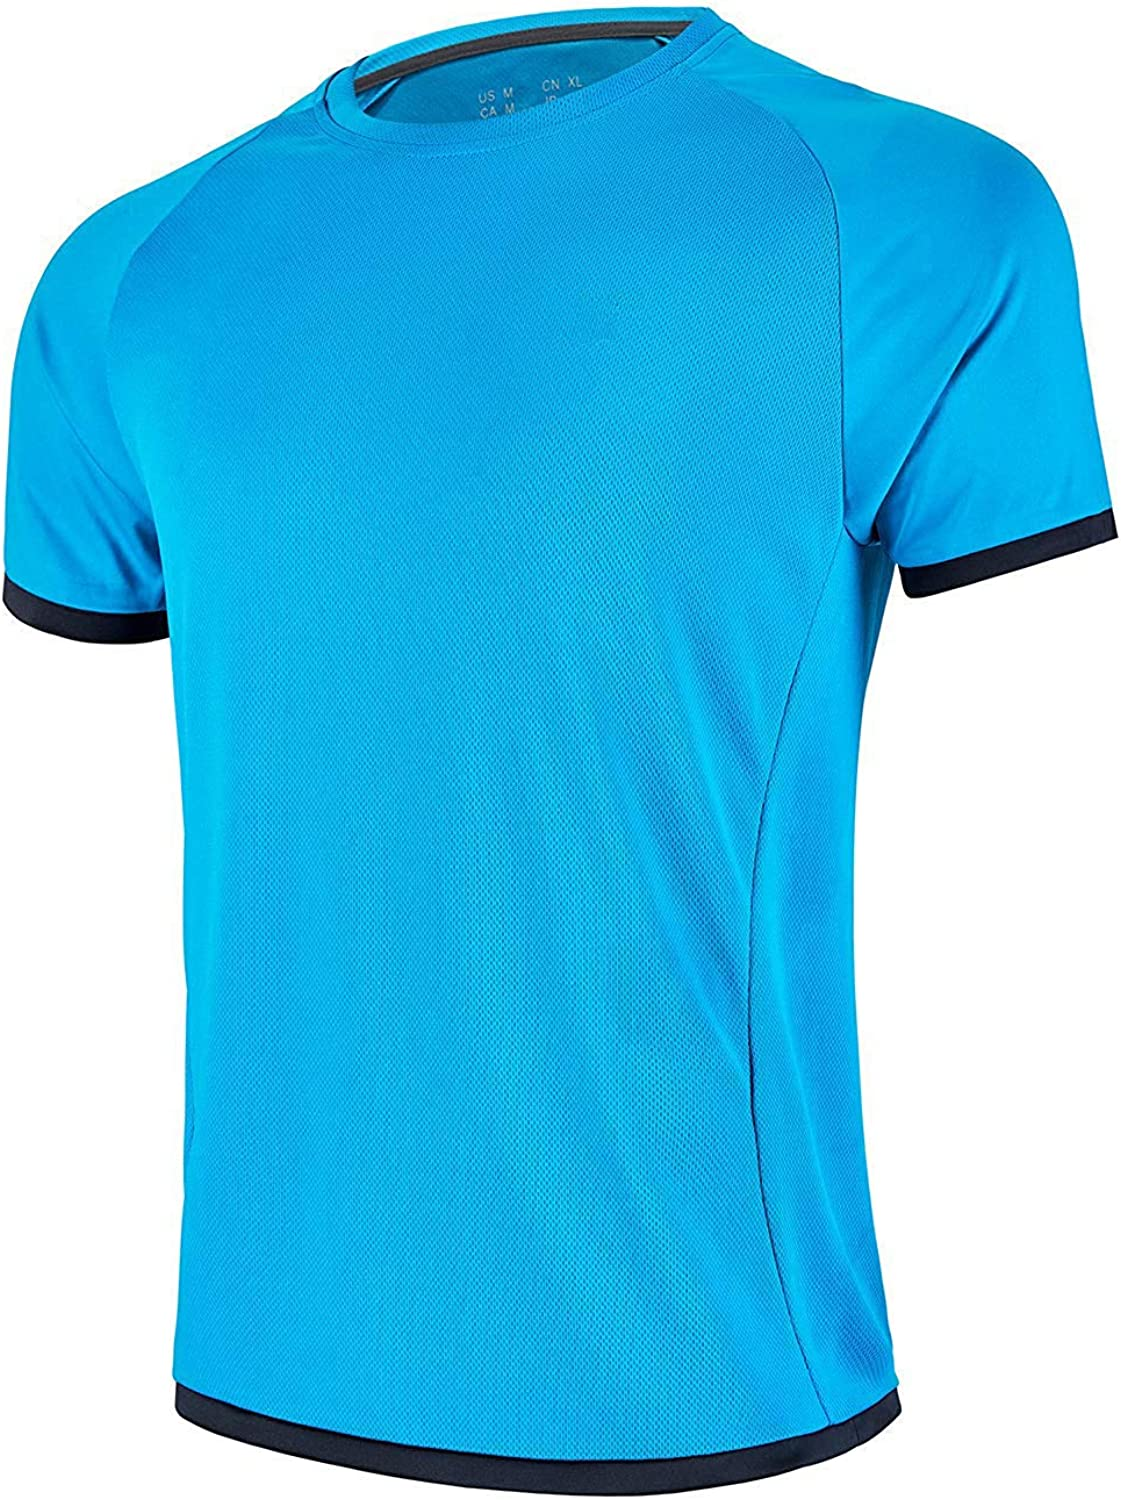 Men's-Athletic OFFicial shop Dry-Fit Shirts Running - Wicking Short overseas S Moisture